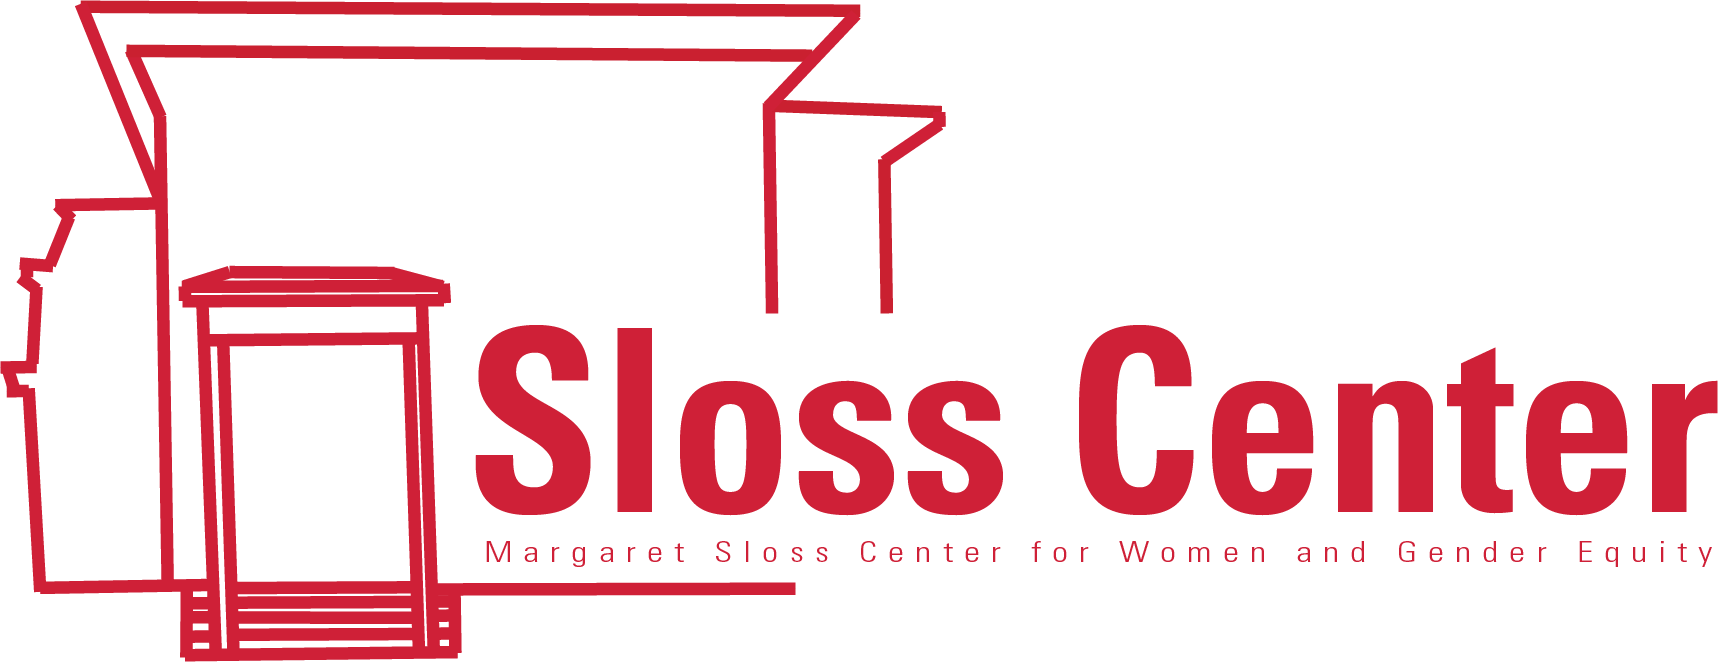 Margaret Sloss Women's Center logo in cardinal